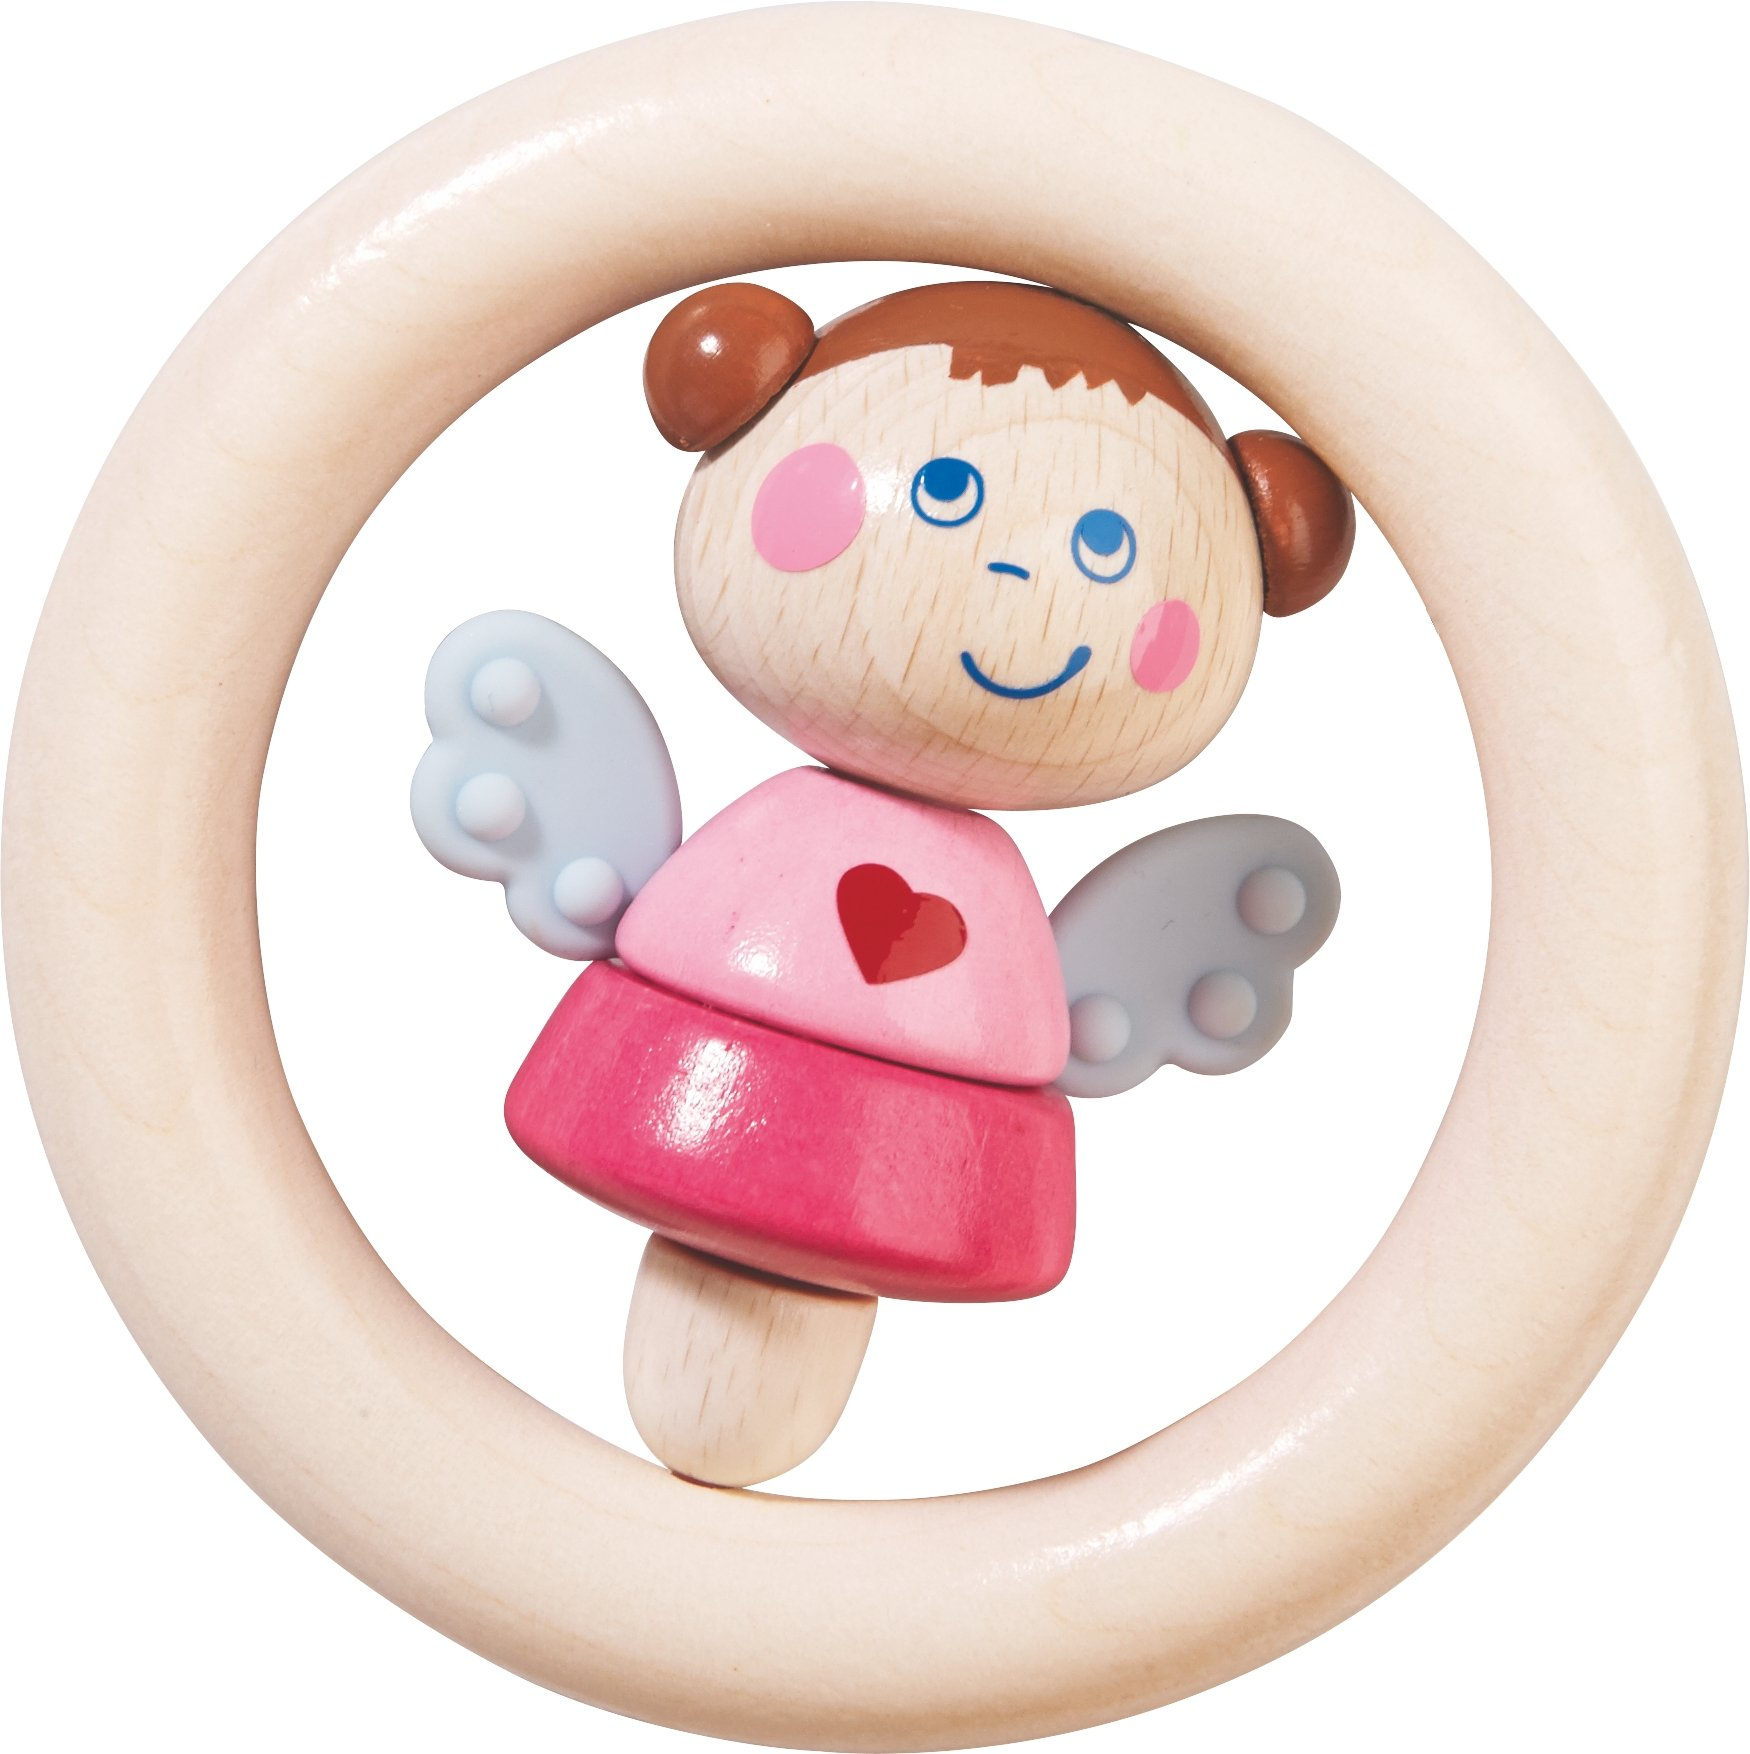 HABA Guardian Angel Natalie Wooden Clutching Toy & Teether (Made in Germany)